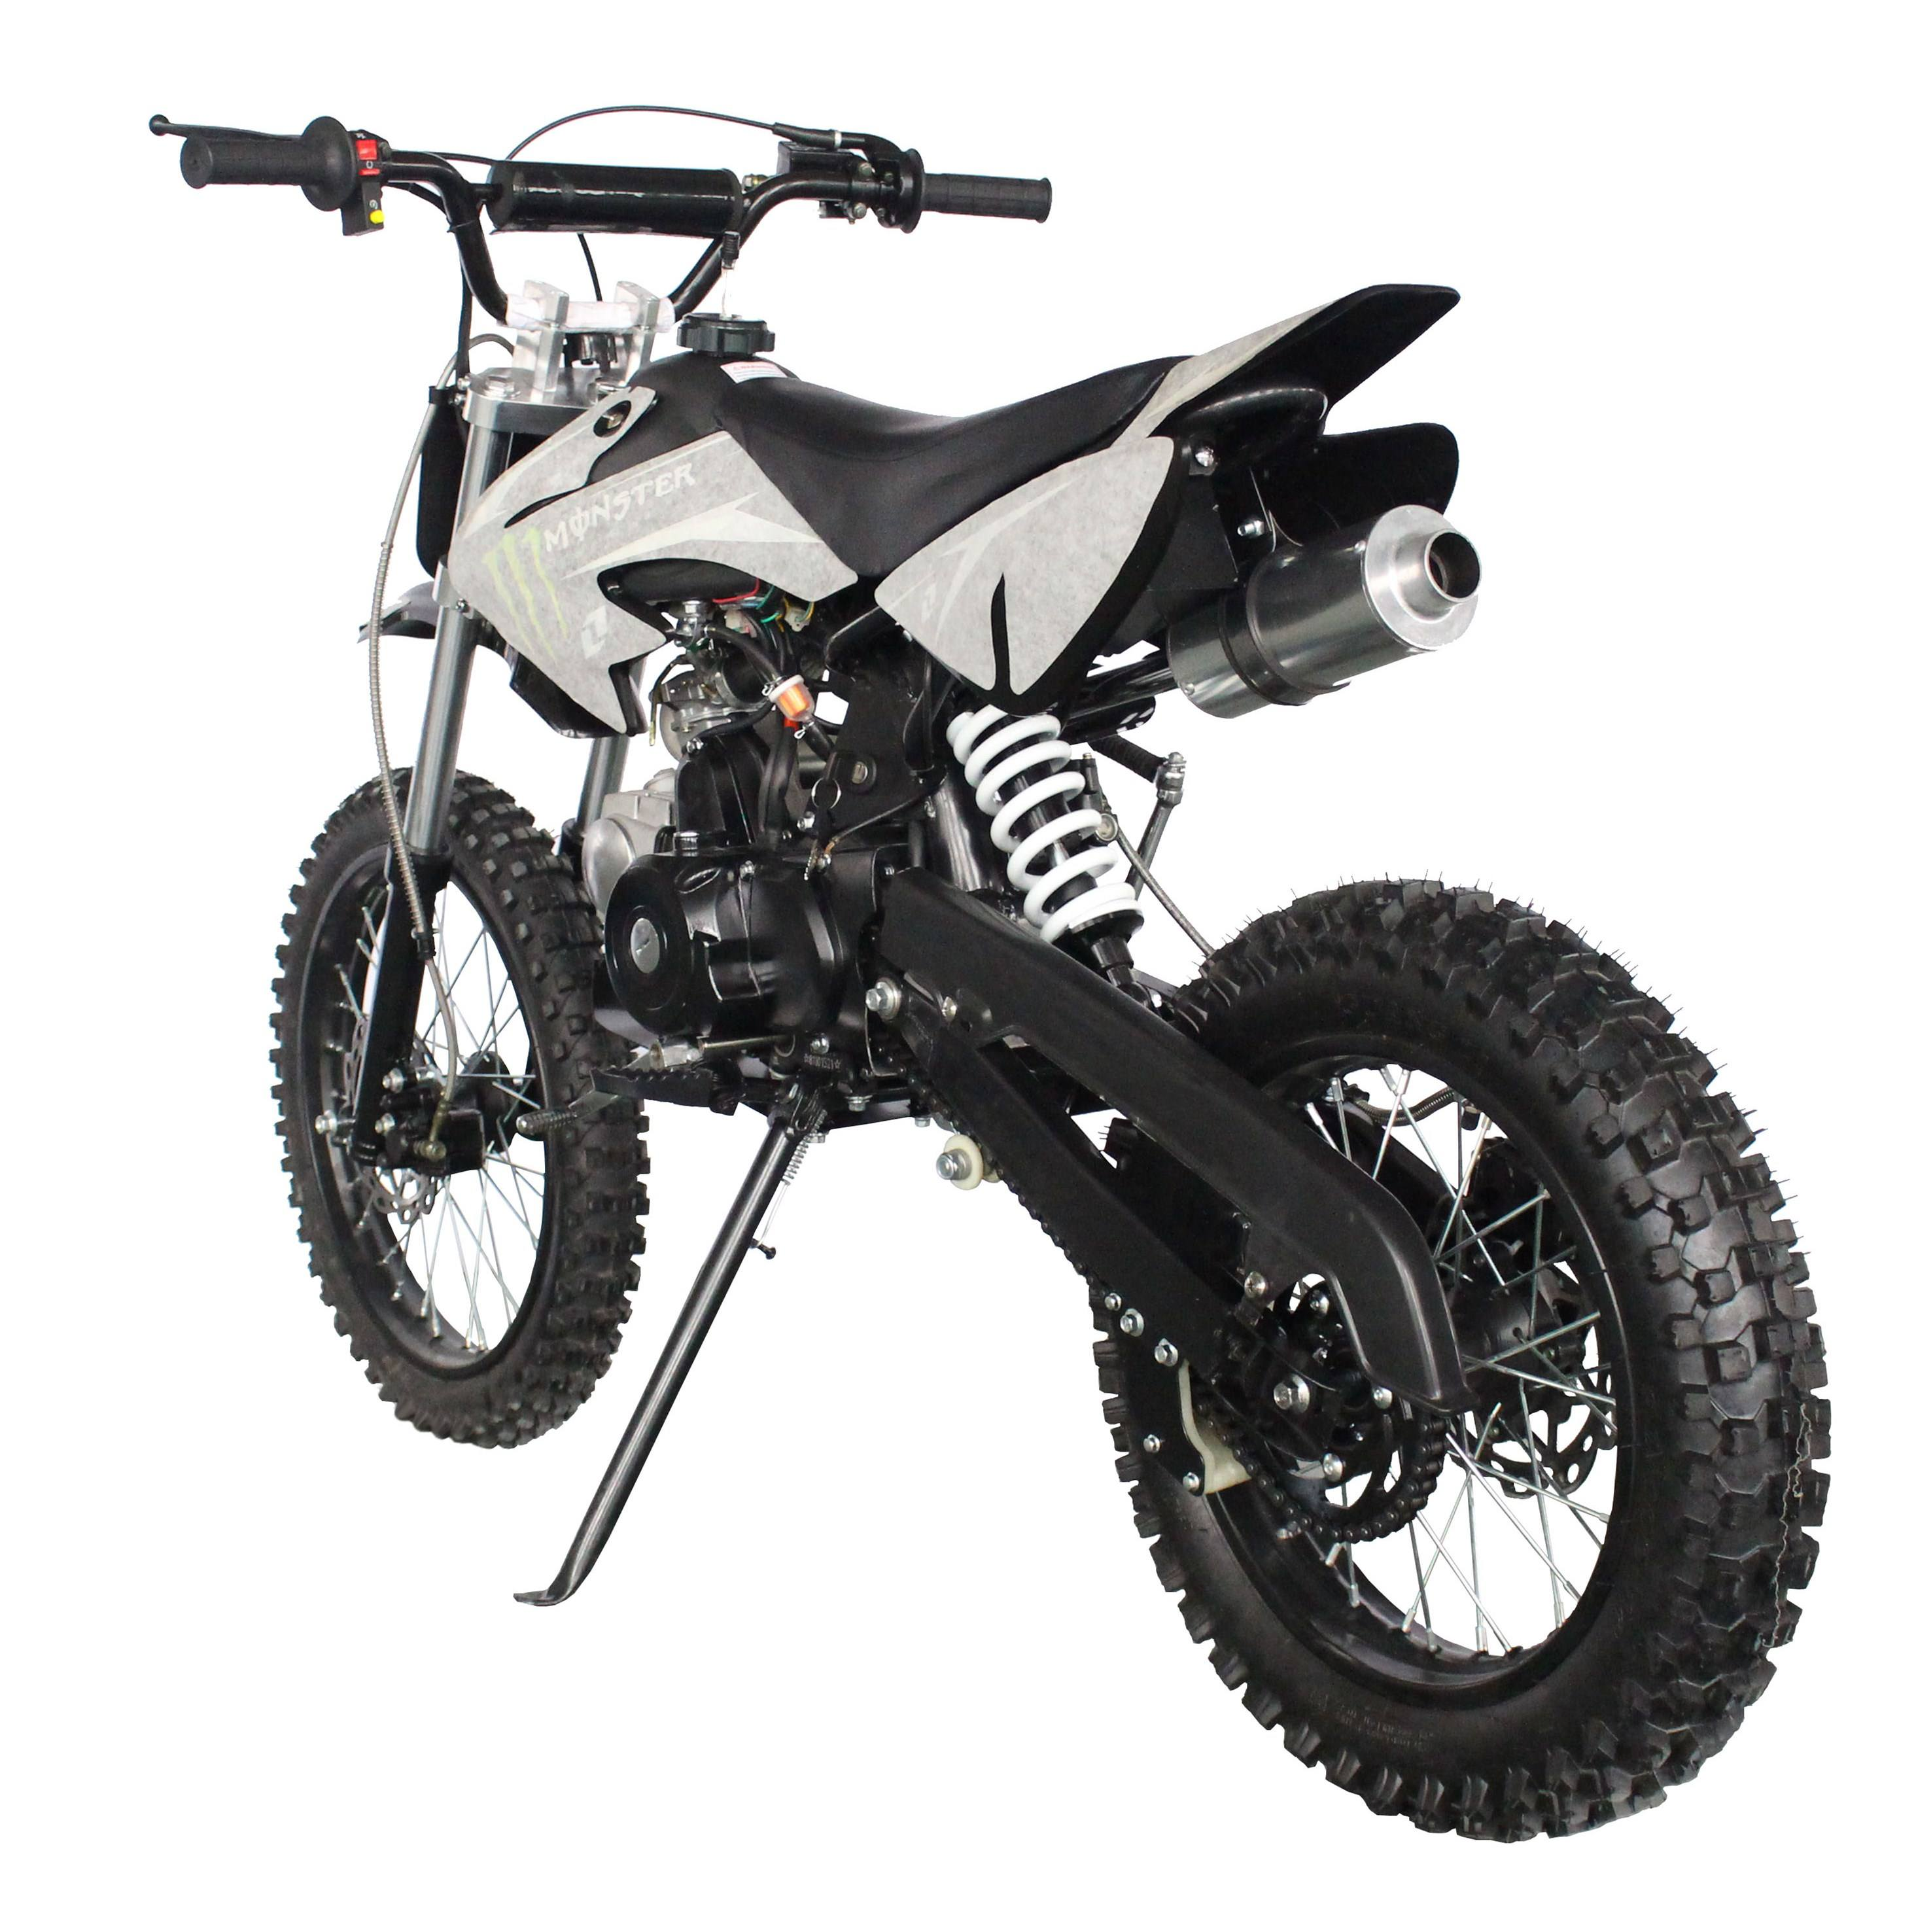 Hot sale factory direct kick start 125cc 4stroke kids gas powered mini dirt bike for sale